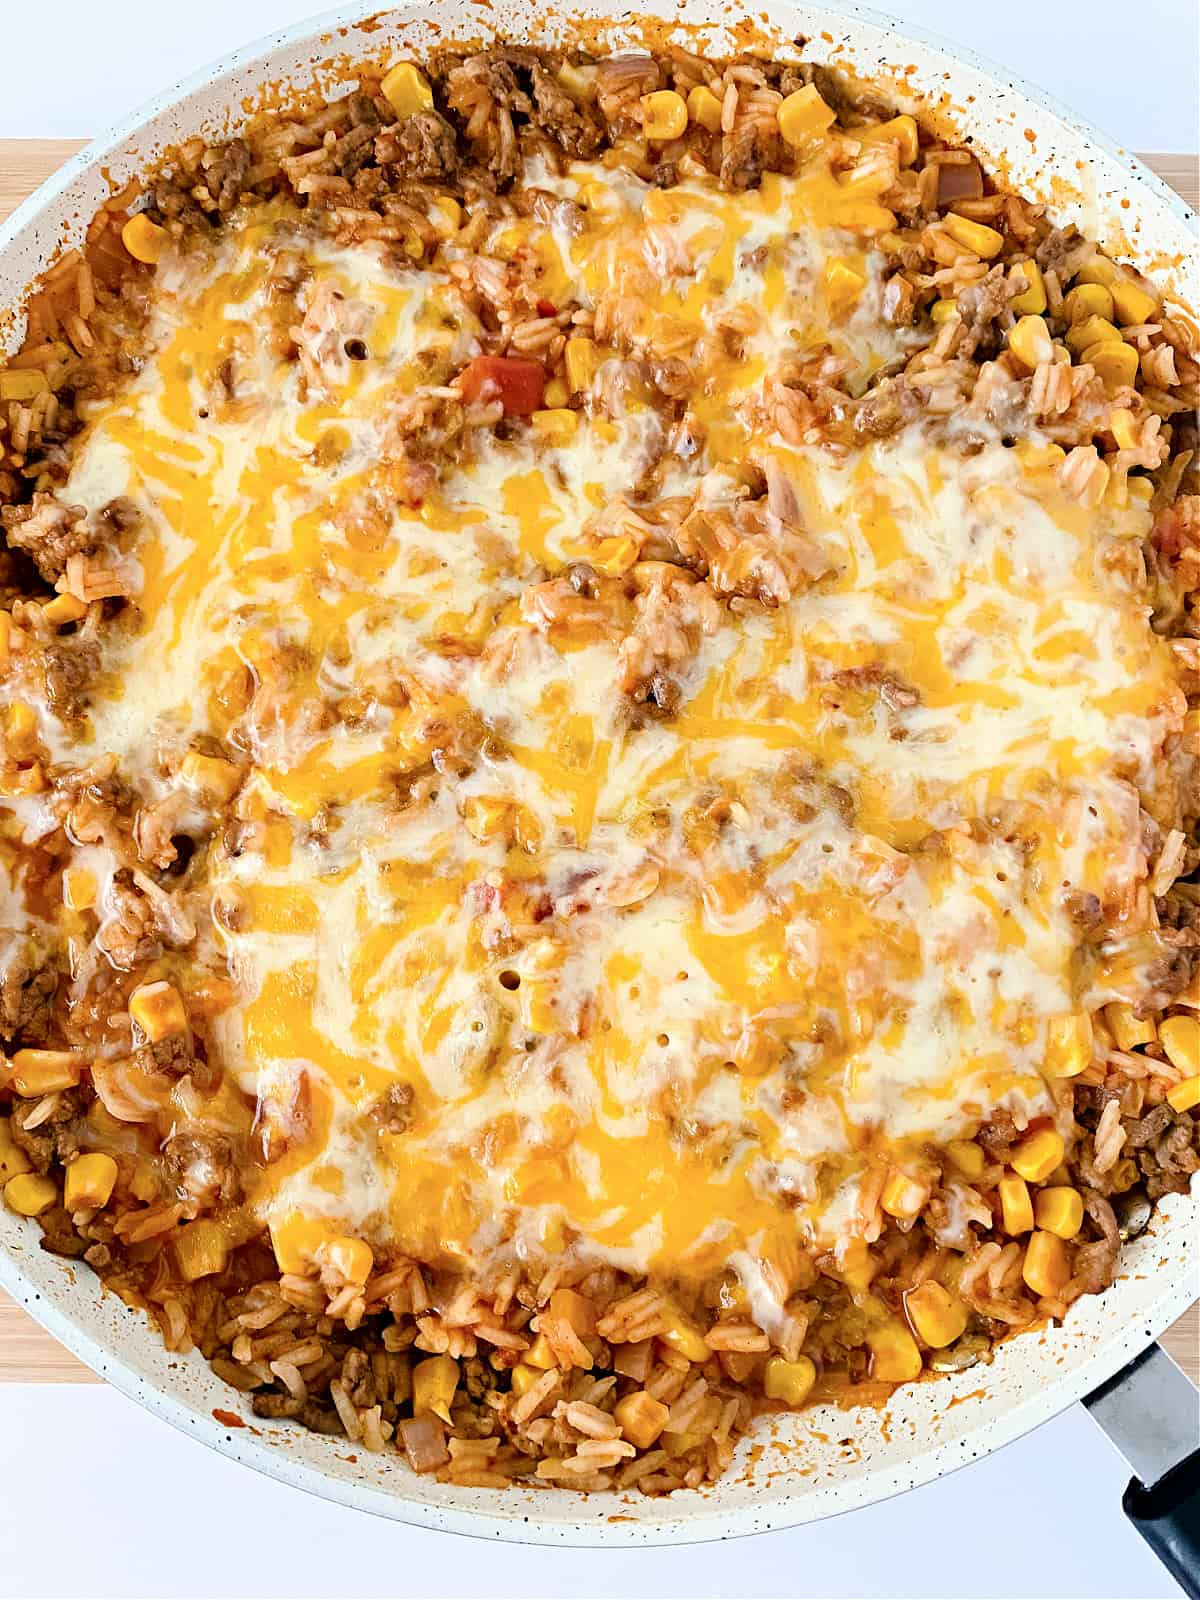 Close up view of Mexican Casserole with Rice topped with cheese.